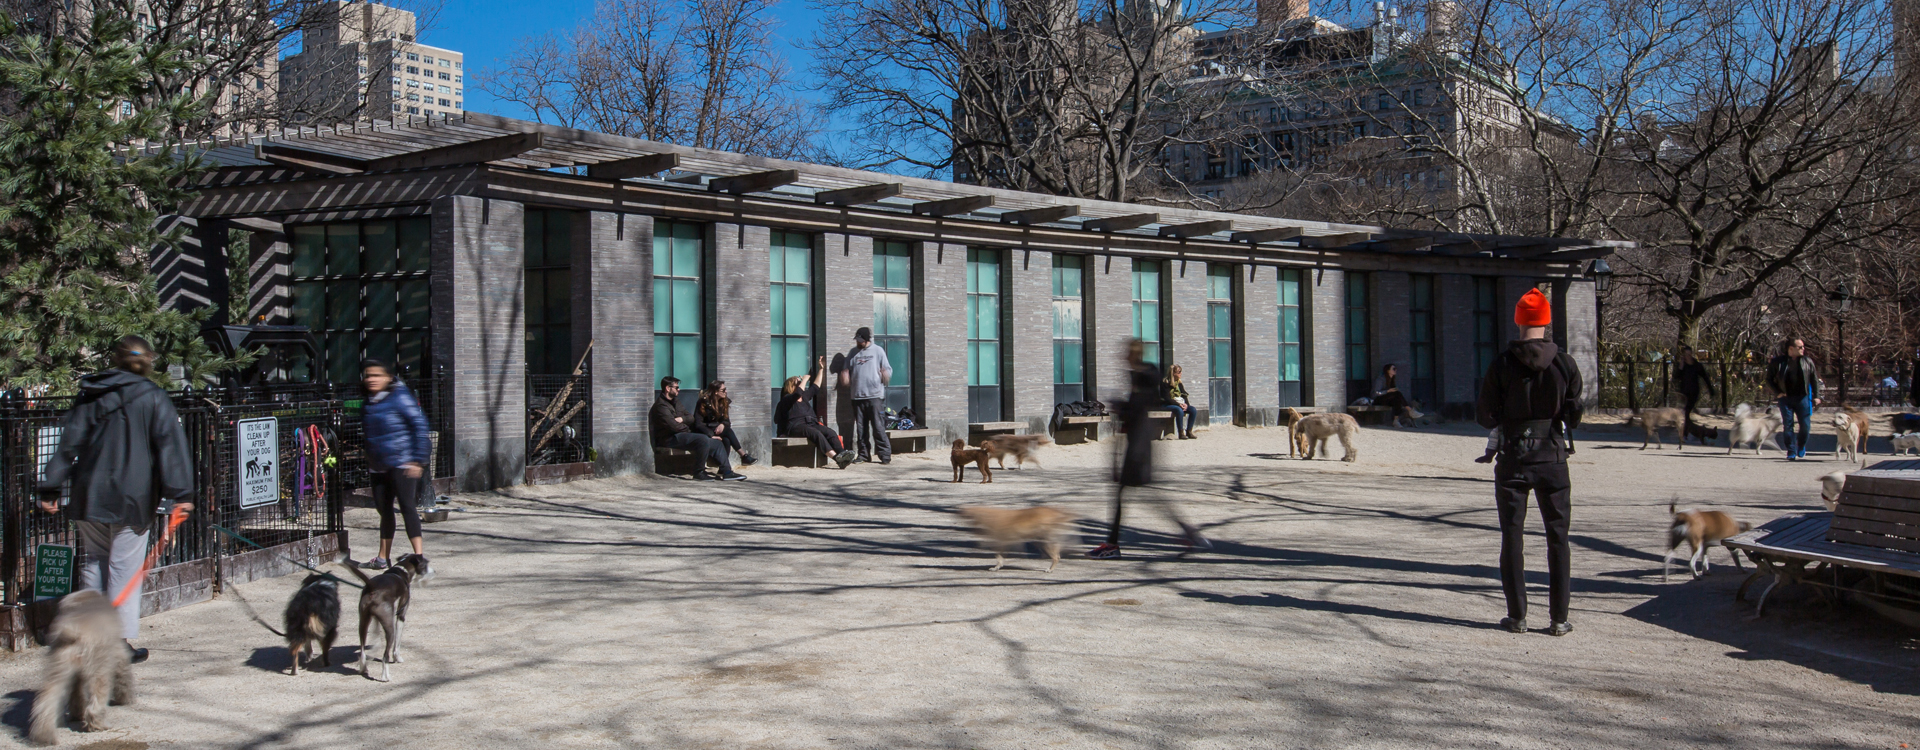 Best Parks For Dogs Nyc